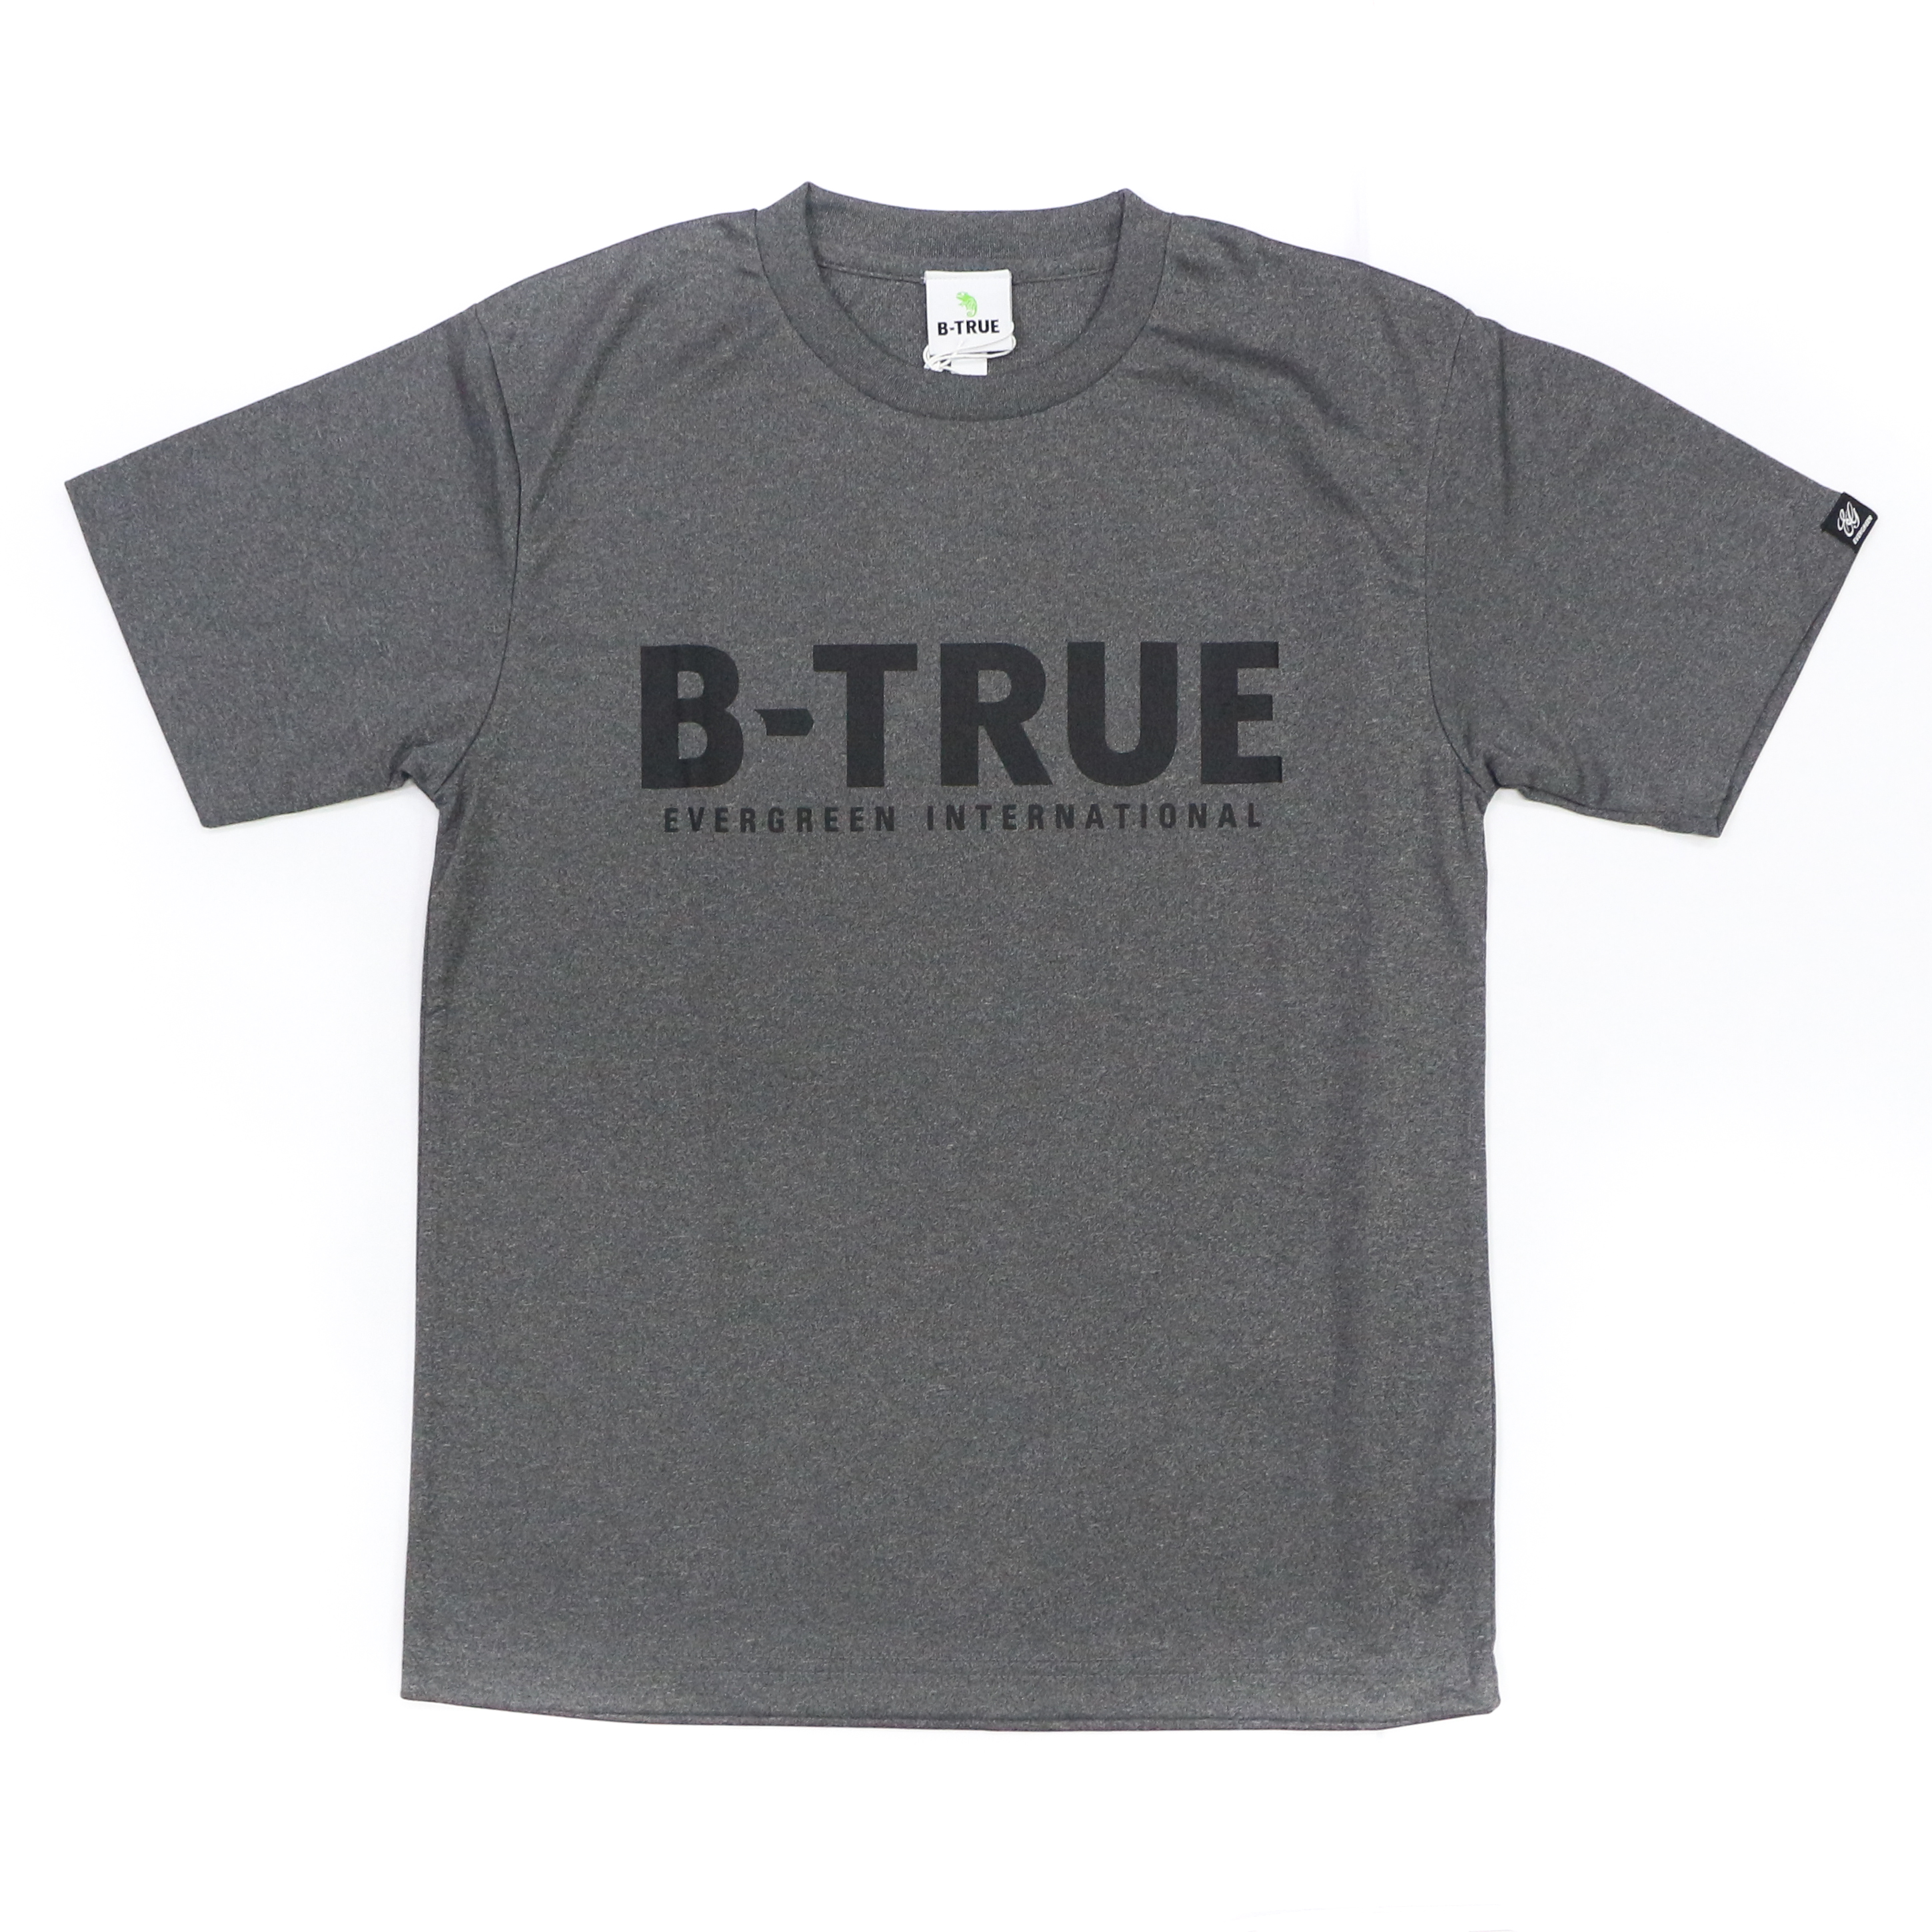 Evergreen T-Shirt Dry Fit Short Sleeve B-True A Type Size S Gray (7695)